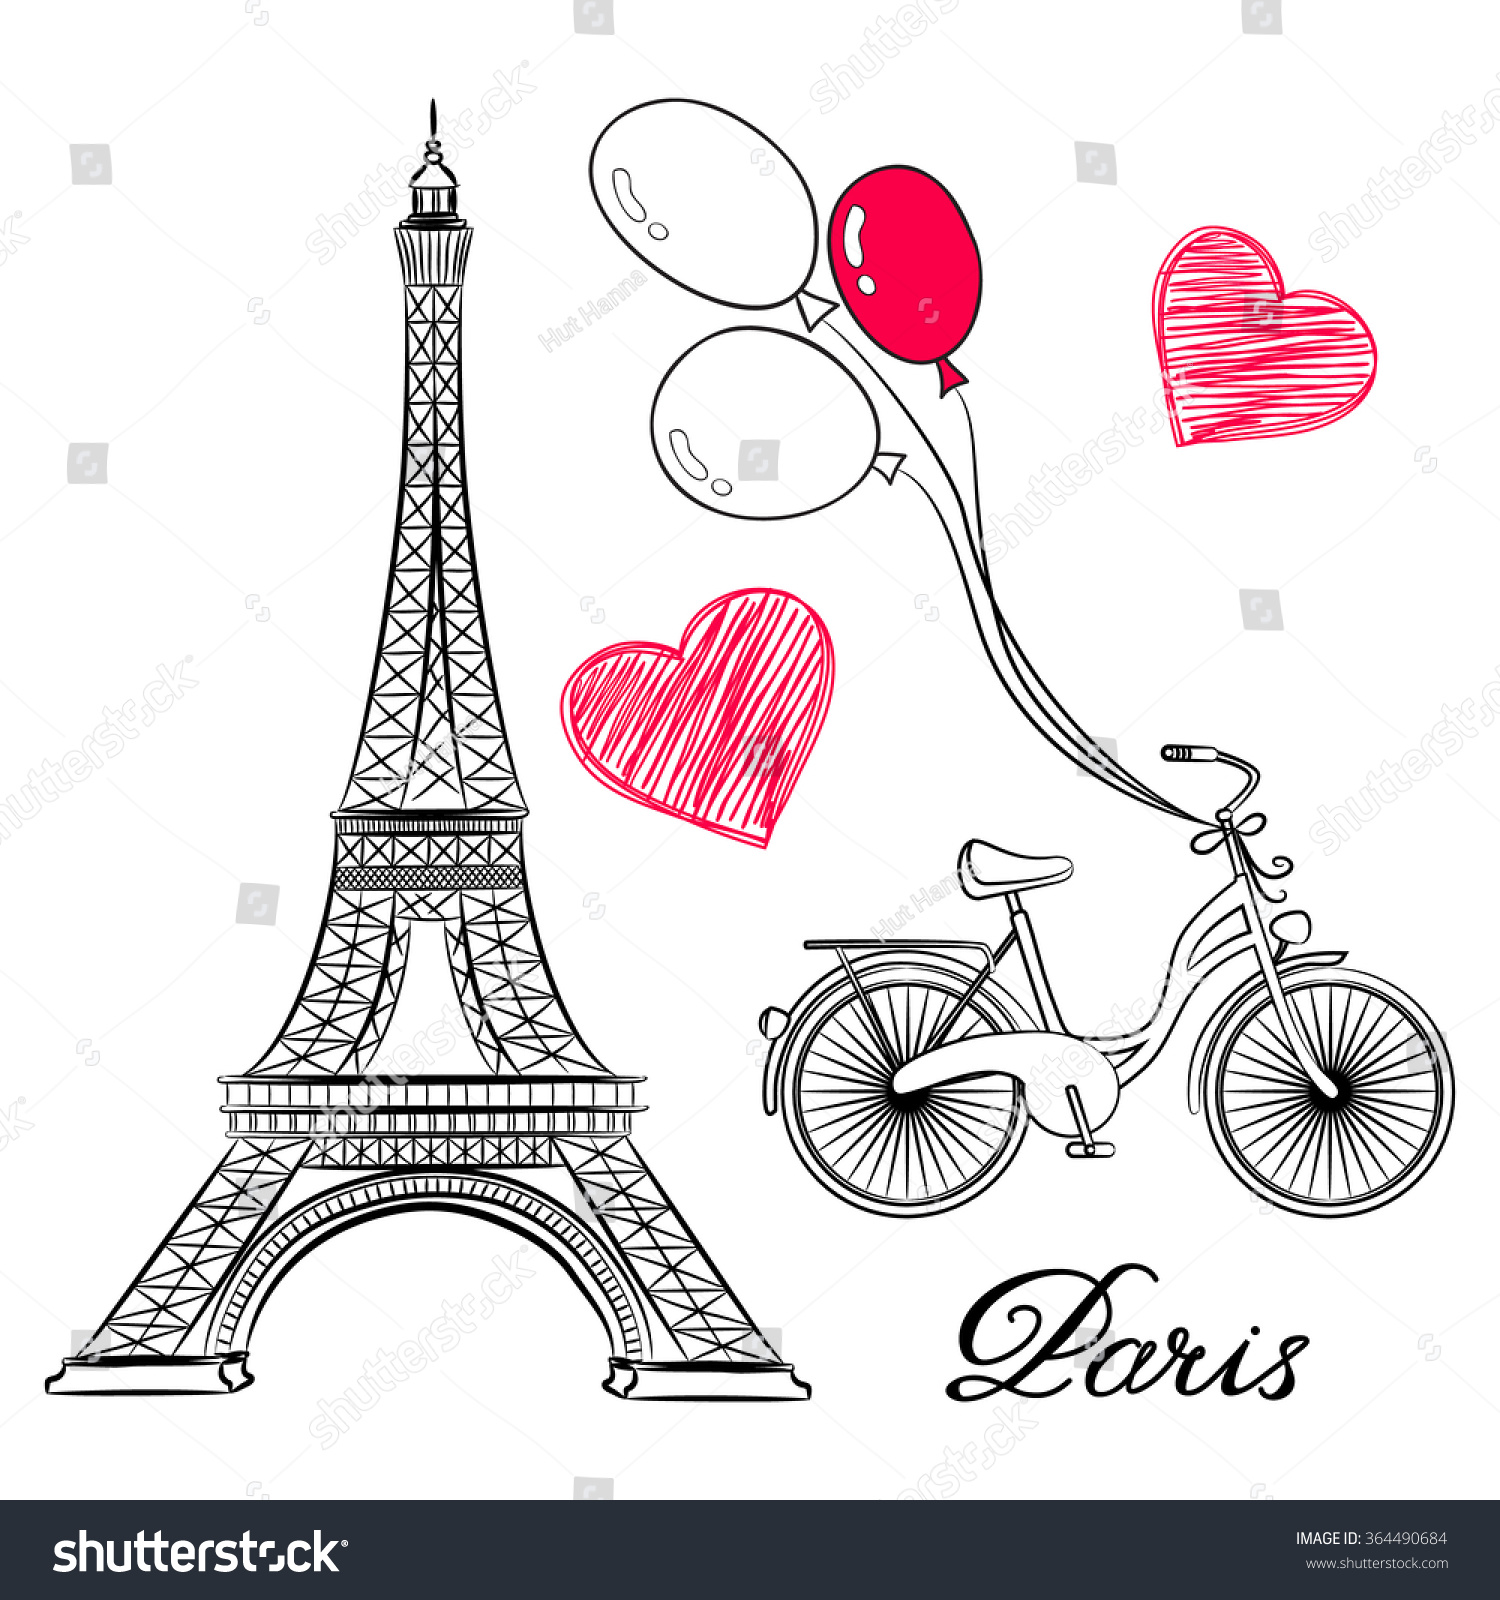 sketch of Paris Eiffel Tower and bike with air balloons Vector illustration